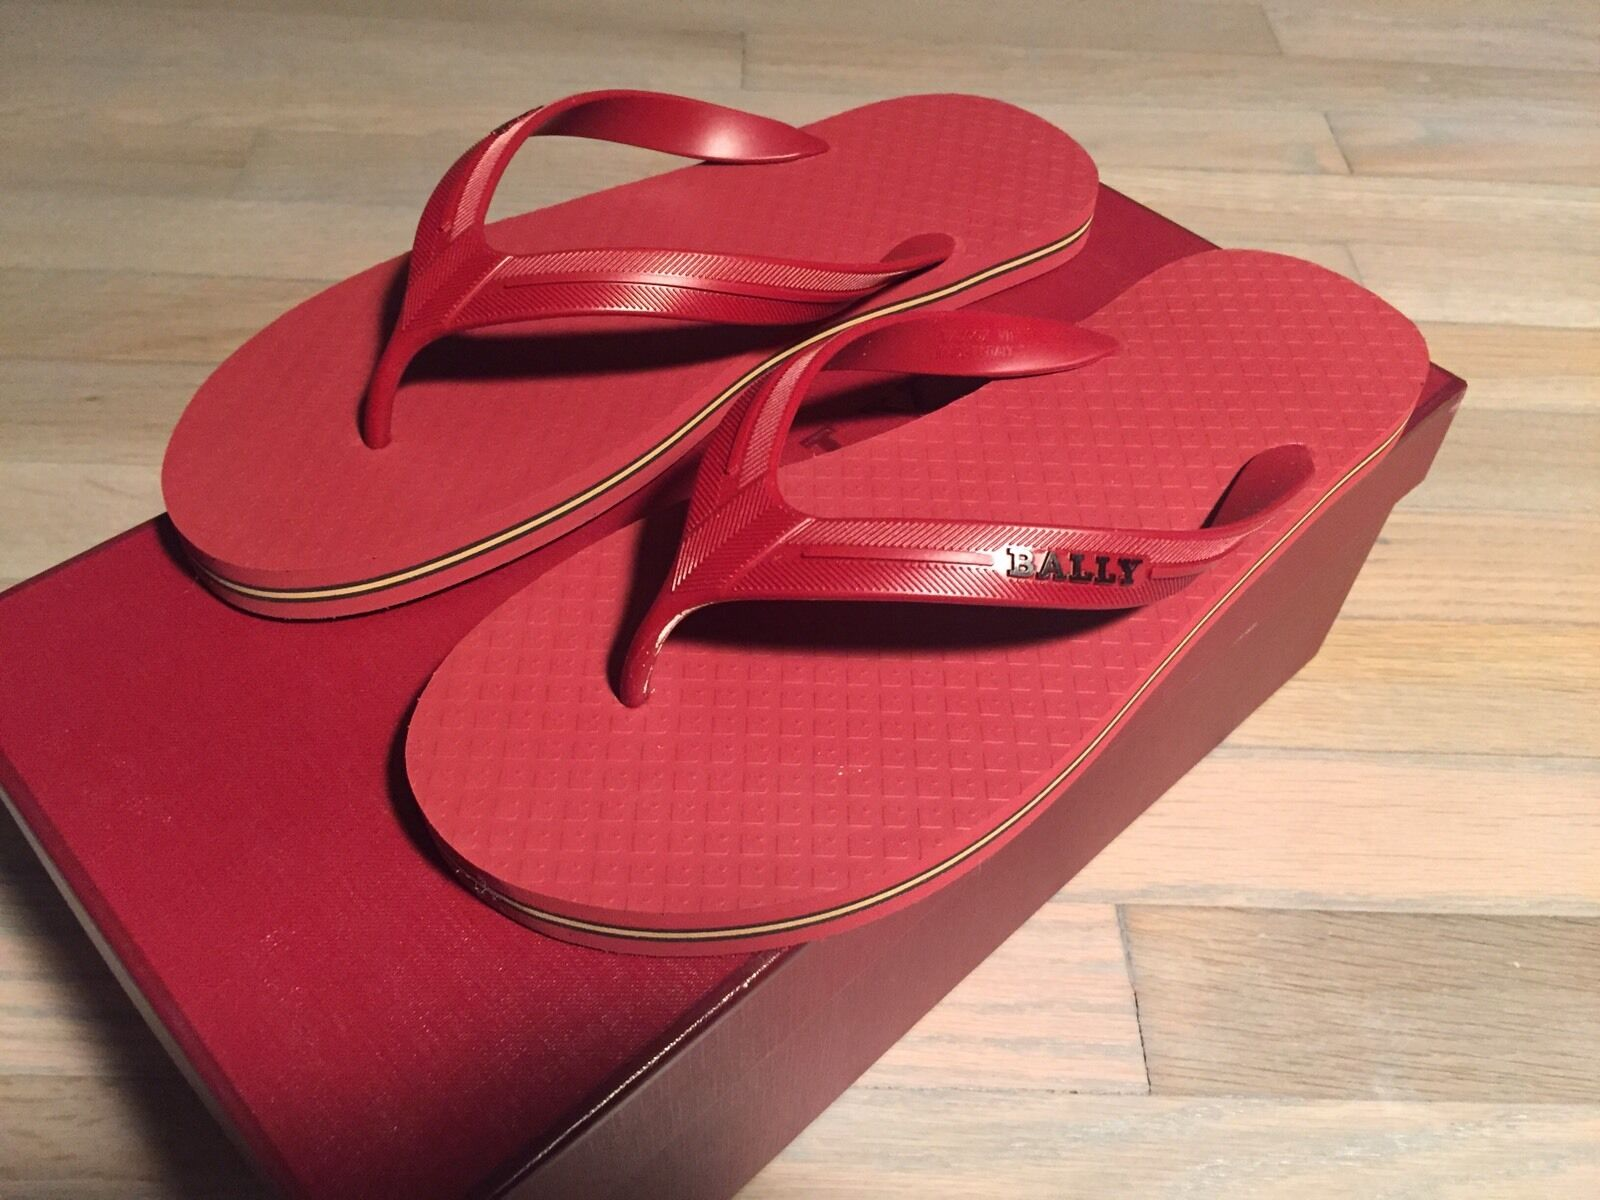 b75dc09ccc8c81 300  Bally Red Red Red Rubber Sandals size US 12 Made in Italy c41607